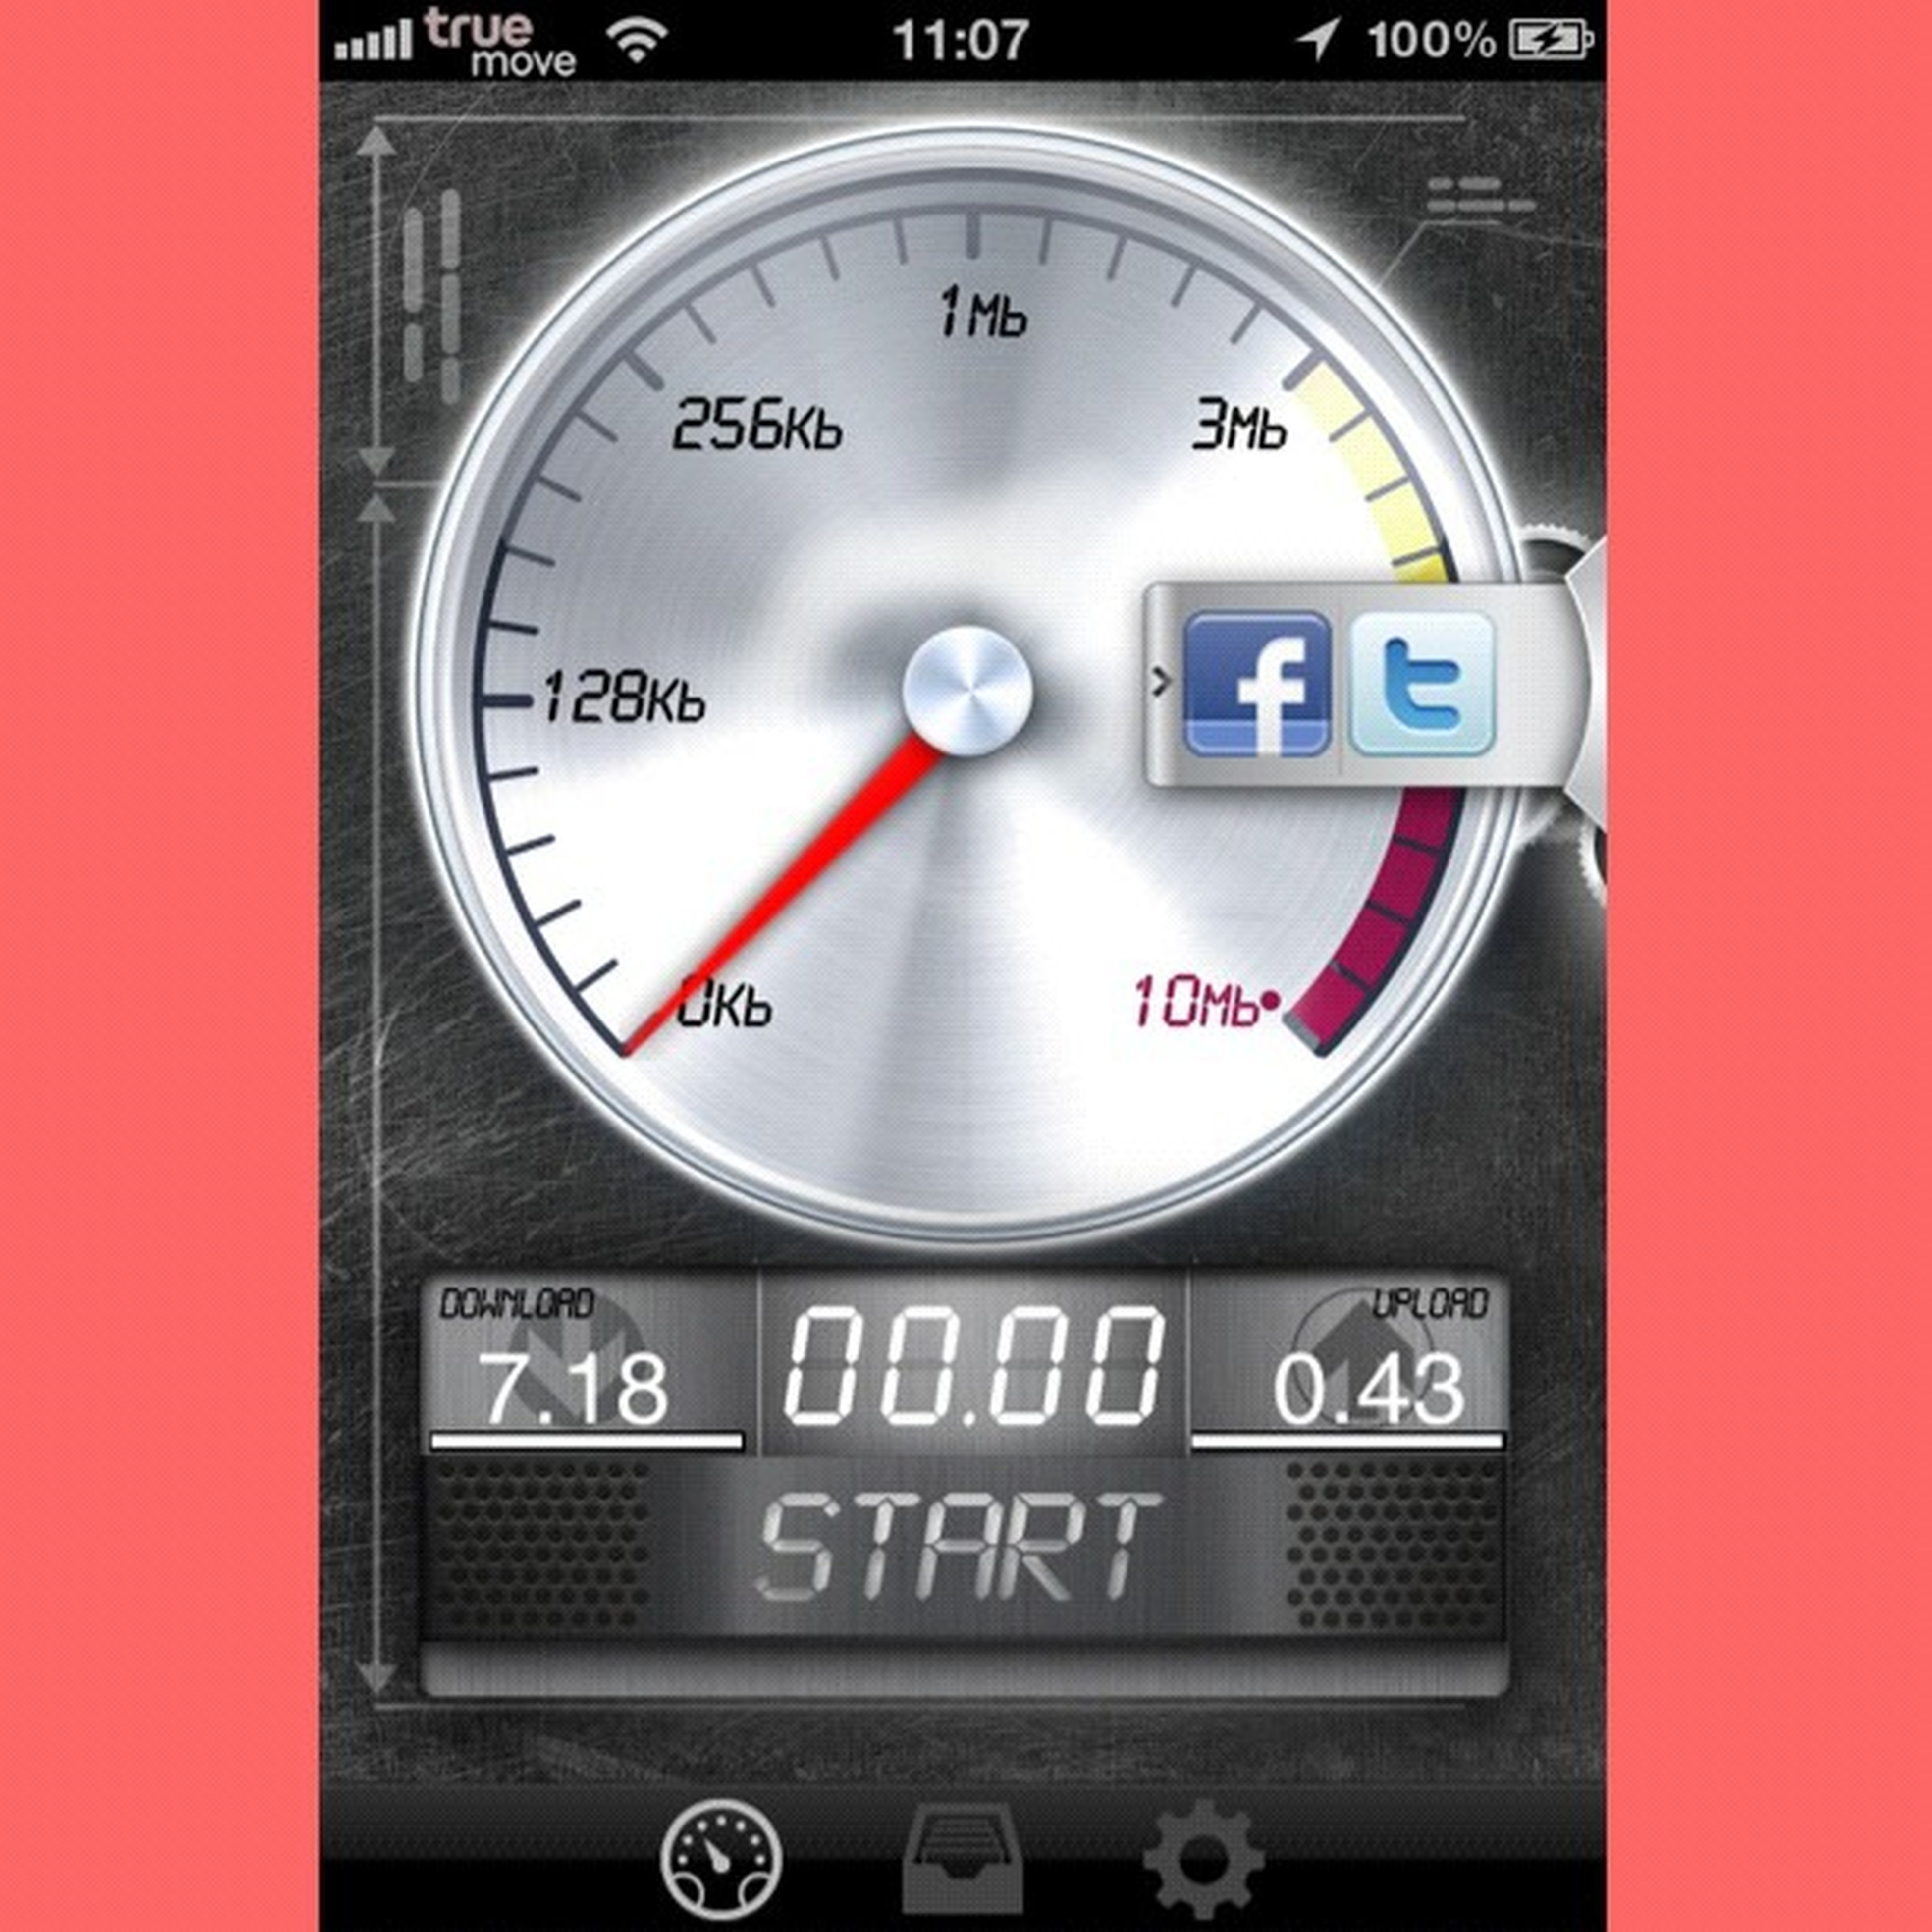 communication, number, text, clock, time, western script, speedometer, close-up, accuracy, wall clock, indoors, clock face, old-fashioned, technology, instrument of time, instrument of measurement, gauge, minute hand, transportation, circle